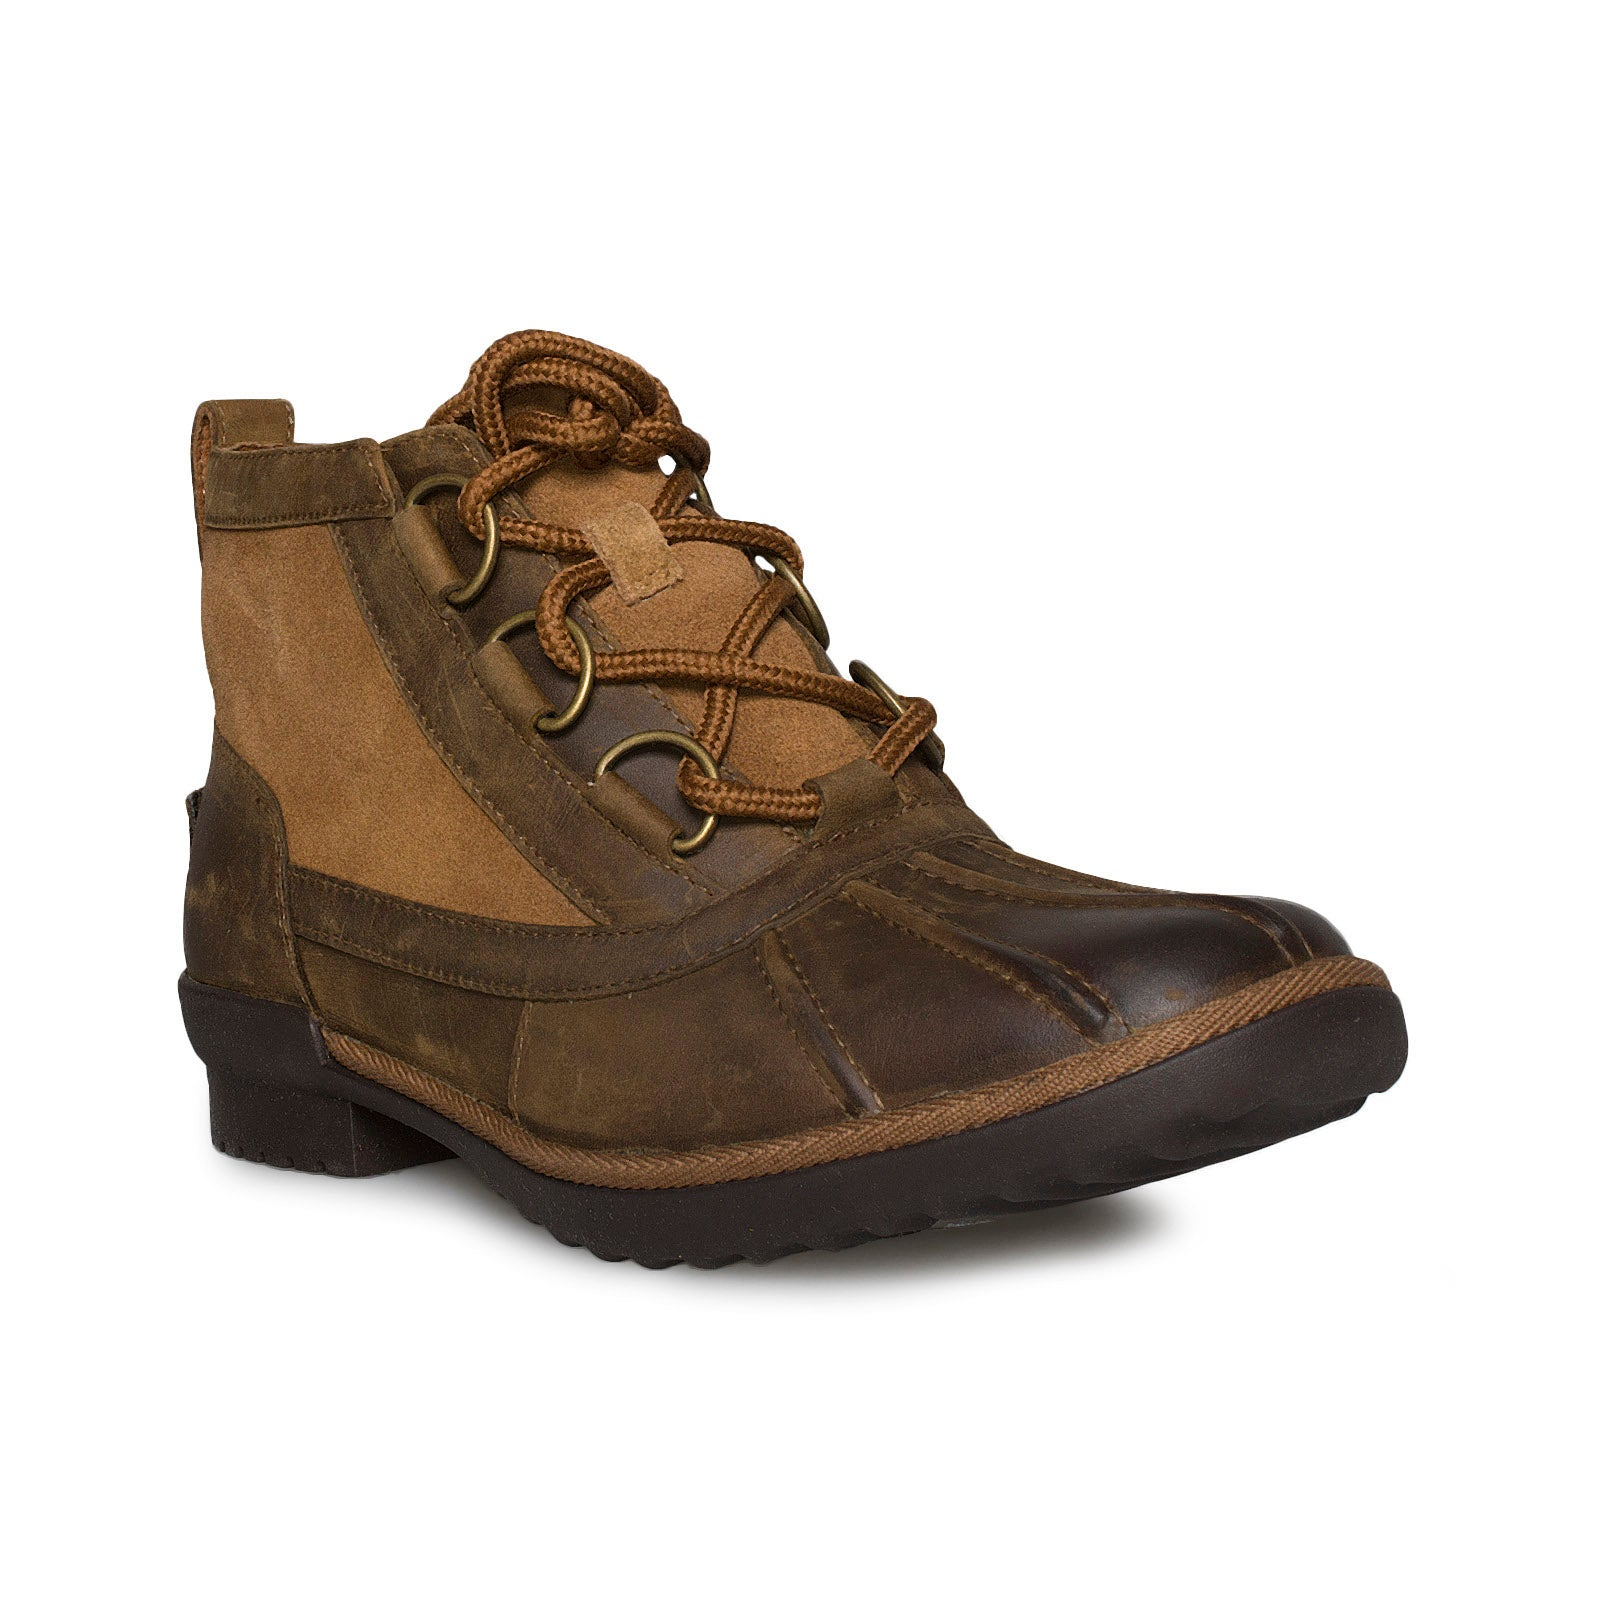 9ed28228cfd UGG Heather Chestnut Boots - Women's